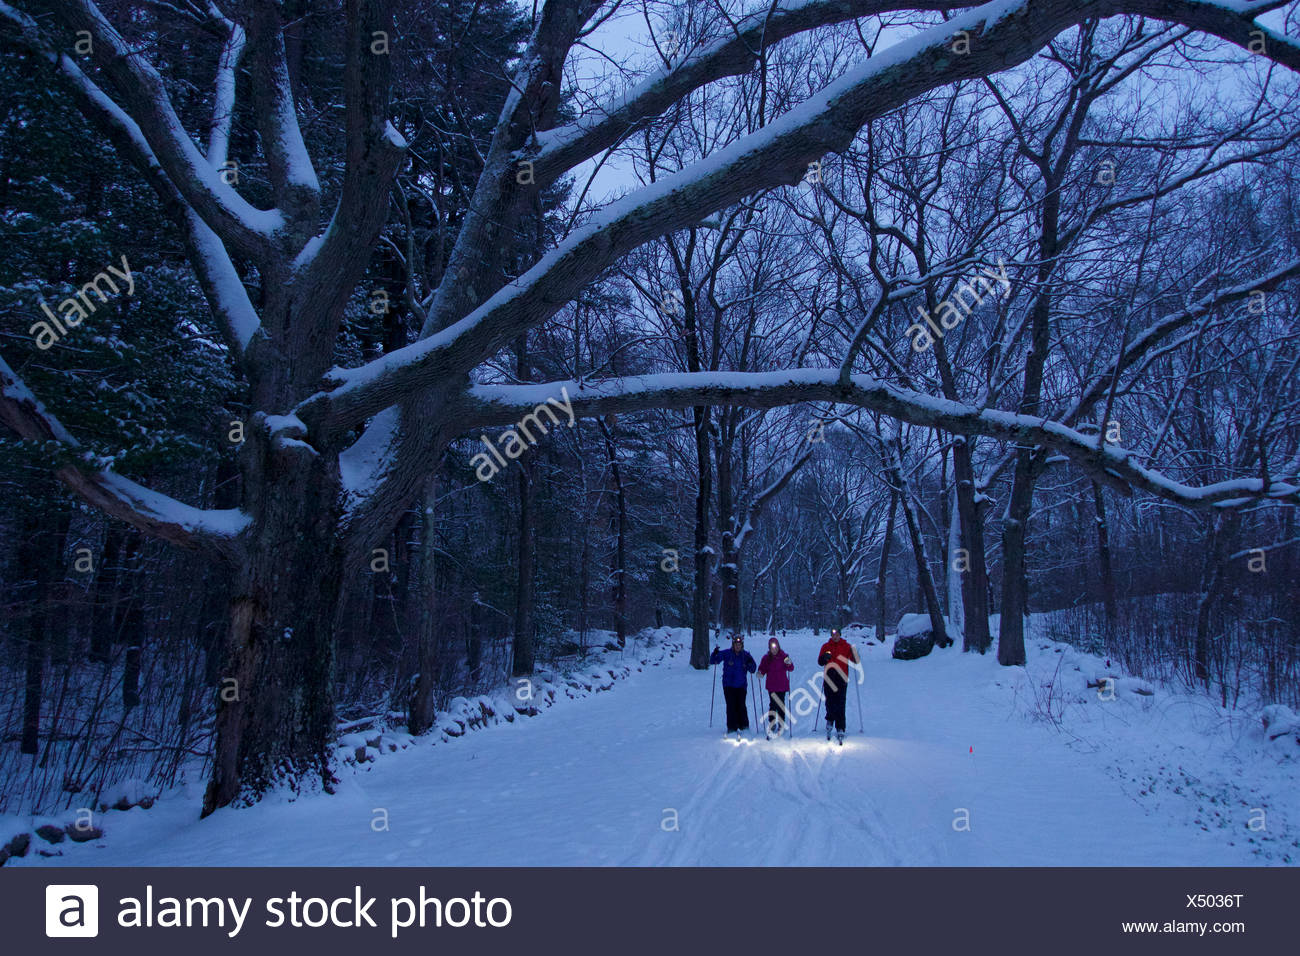 A woman and her teen daughter and son cross-country ski beneath fresh snow covered trees in twilight with headlamps on. - Stock Image